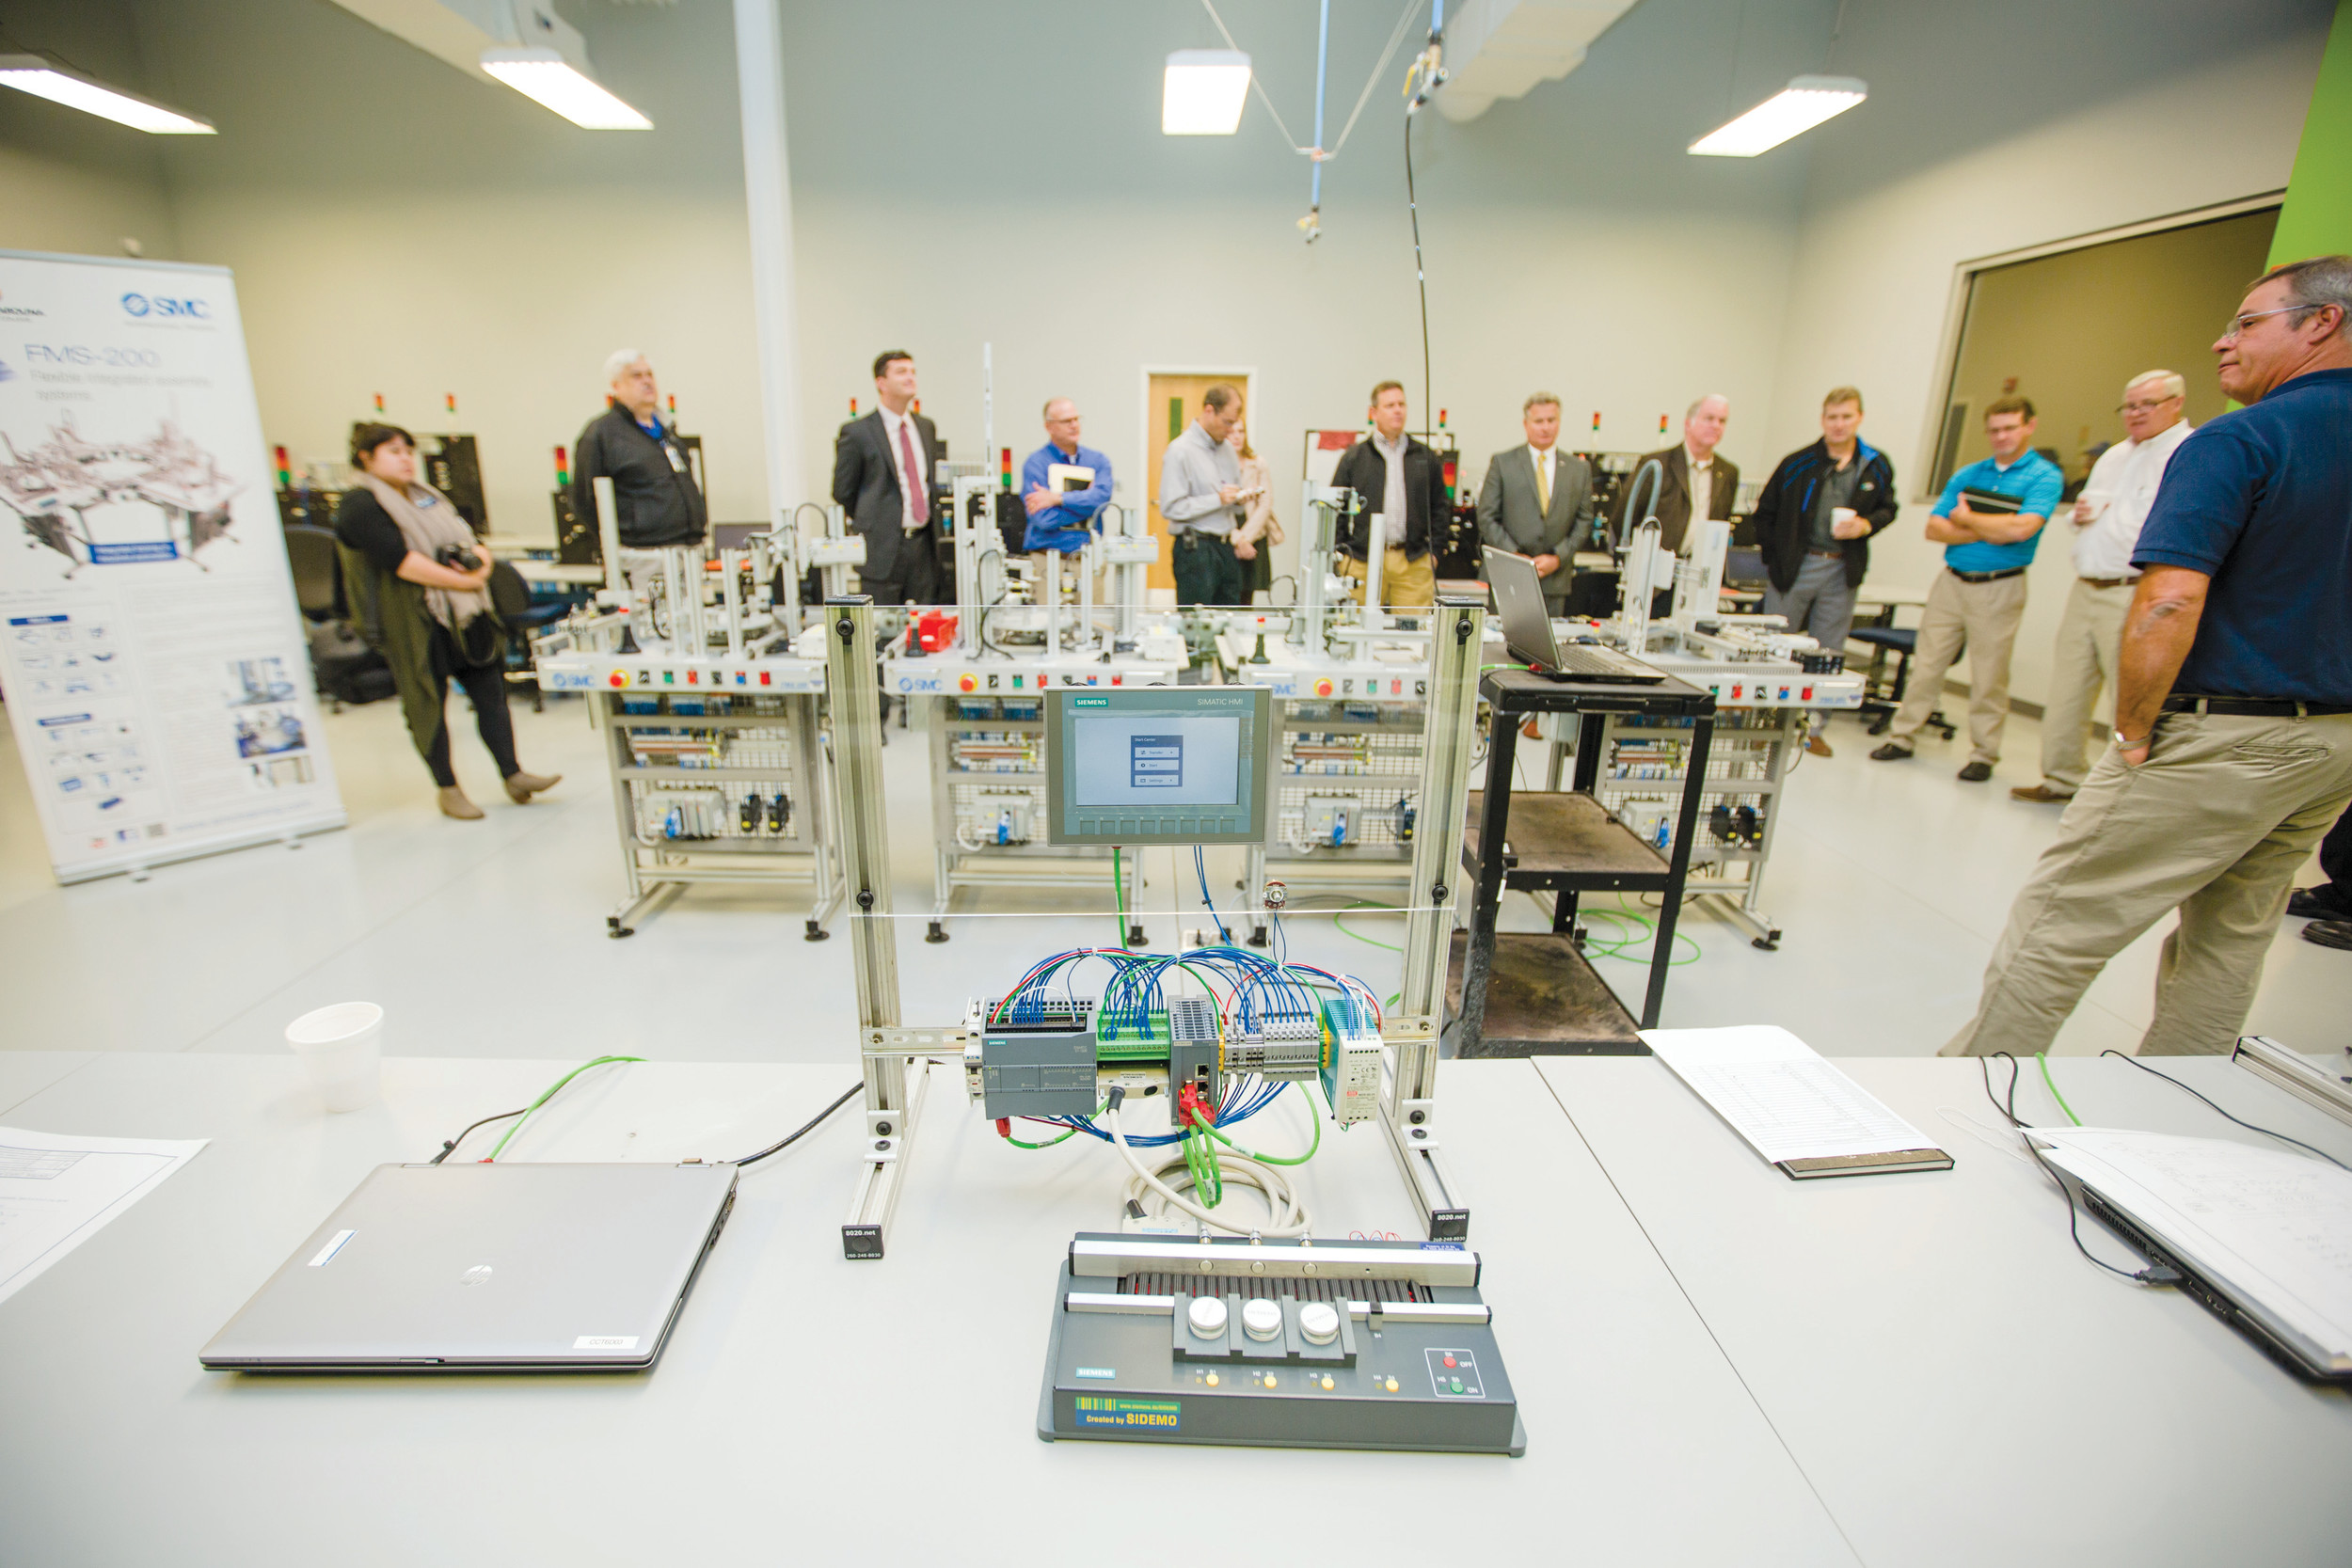 Bert Hancock, academic program manager for Mechatronics at Central Carolina Technical College, shows off the college's new four-stage flexible manufacturing system recently to industrial and community leaders.